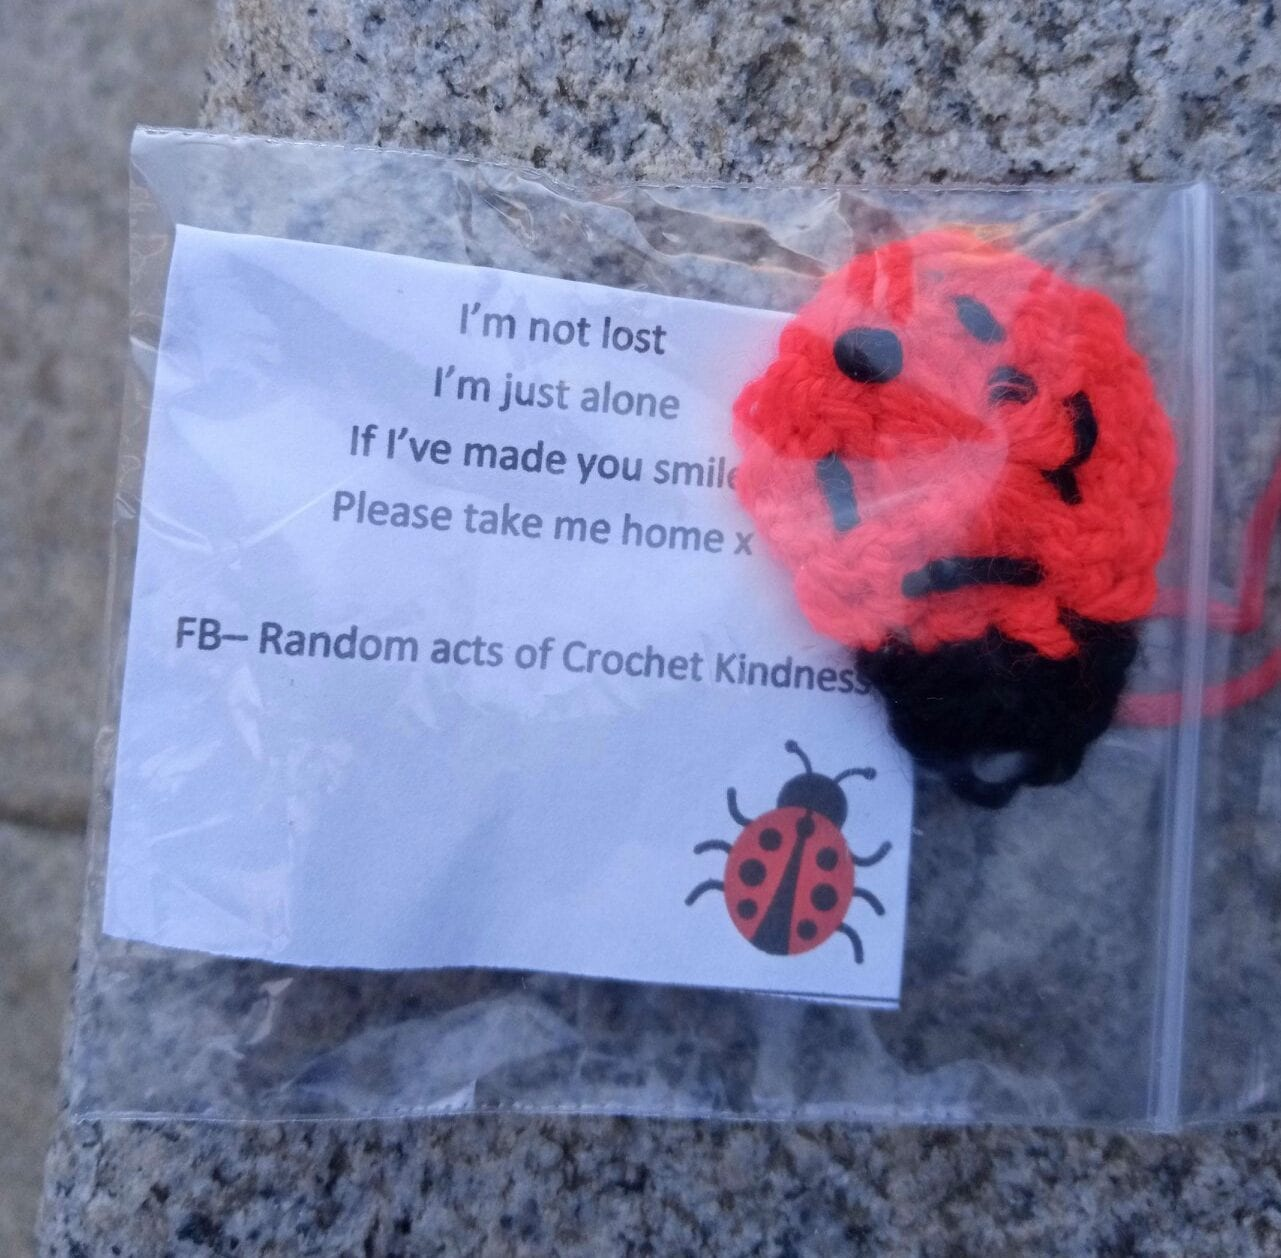 The woman who leaves 'random acts of crochet kindness' to make the people of Salford smile, The Manc